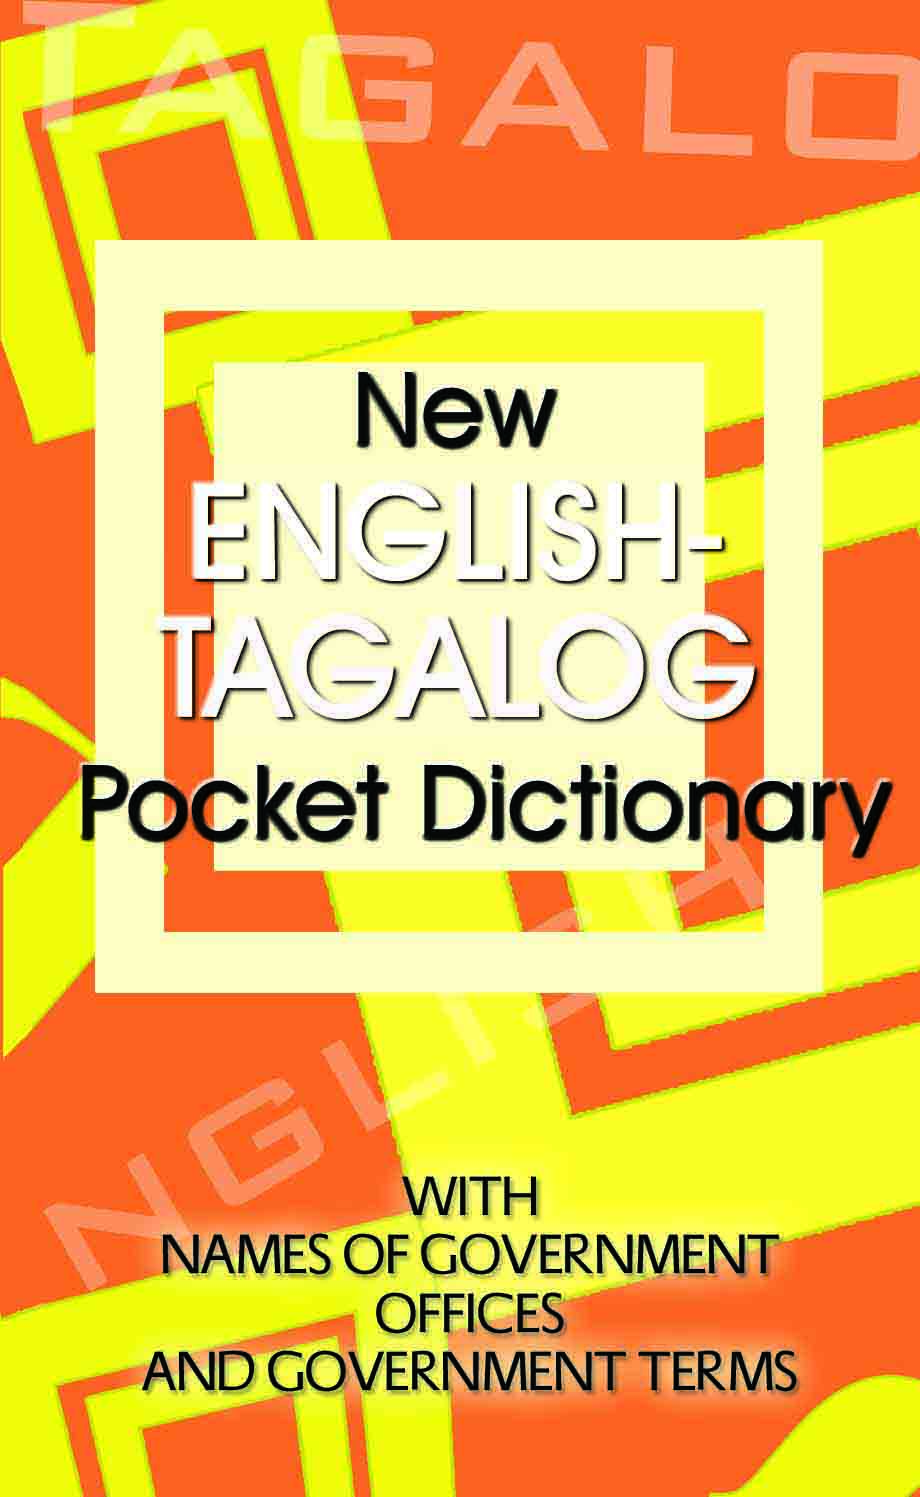 English to Tagalog dictionary online